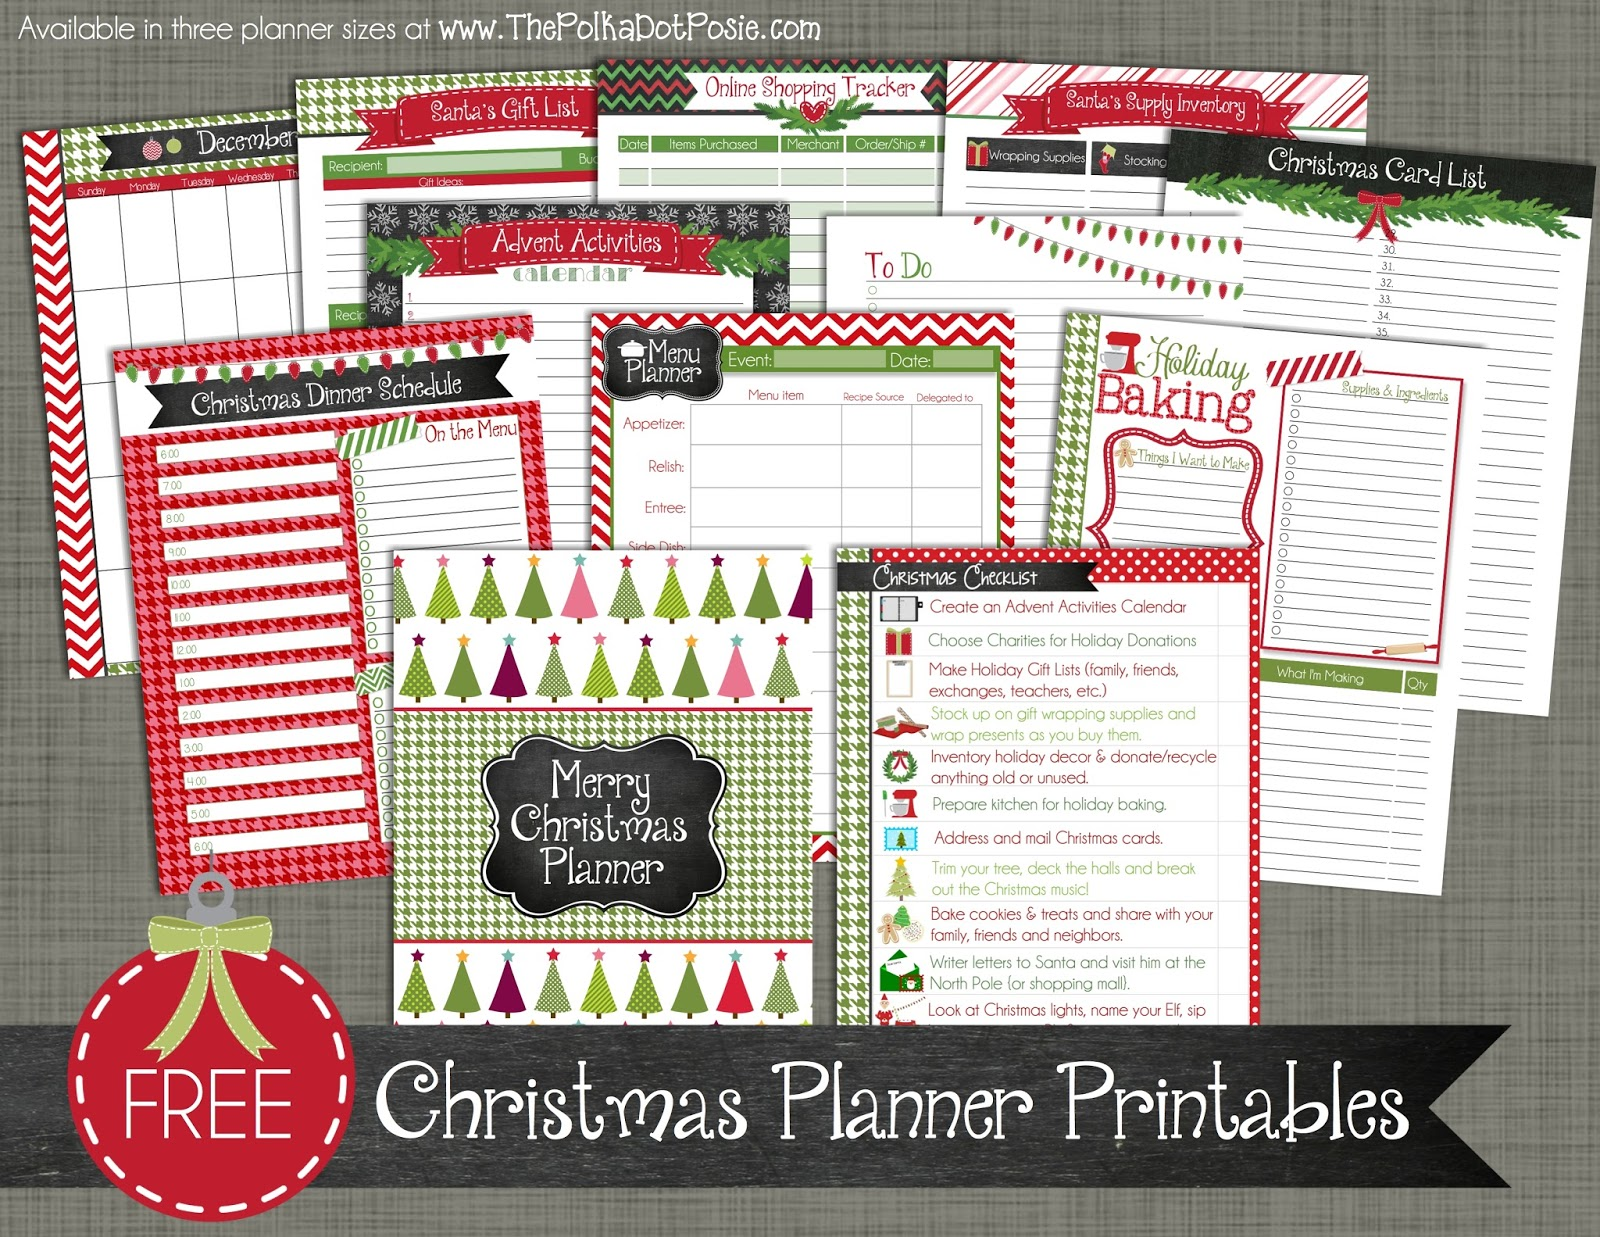 The Polka Dot Posie Introducing Our New Merry Christmas Planner